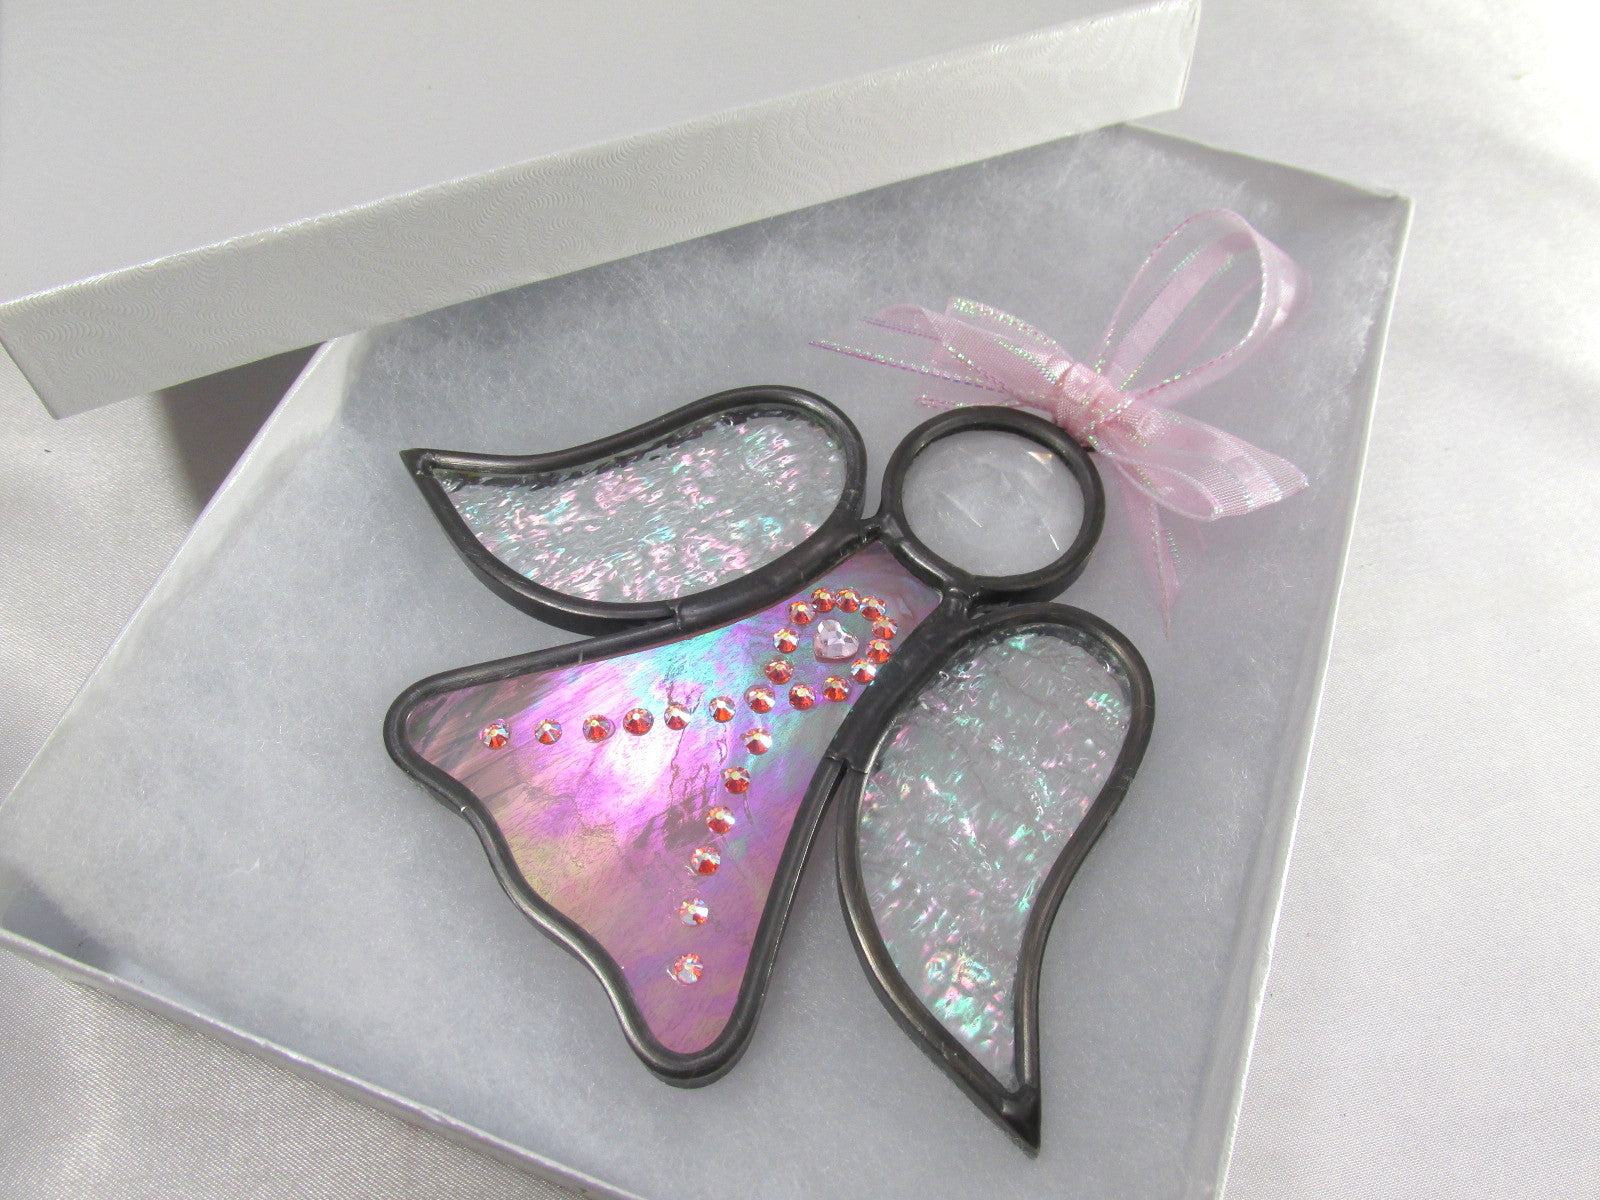 Awareness Ribbon Angel Stained Glass Ornament or Suncatcher - MADE TO ORDER - Odyssey Creations